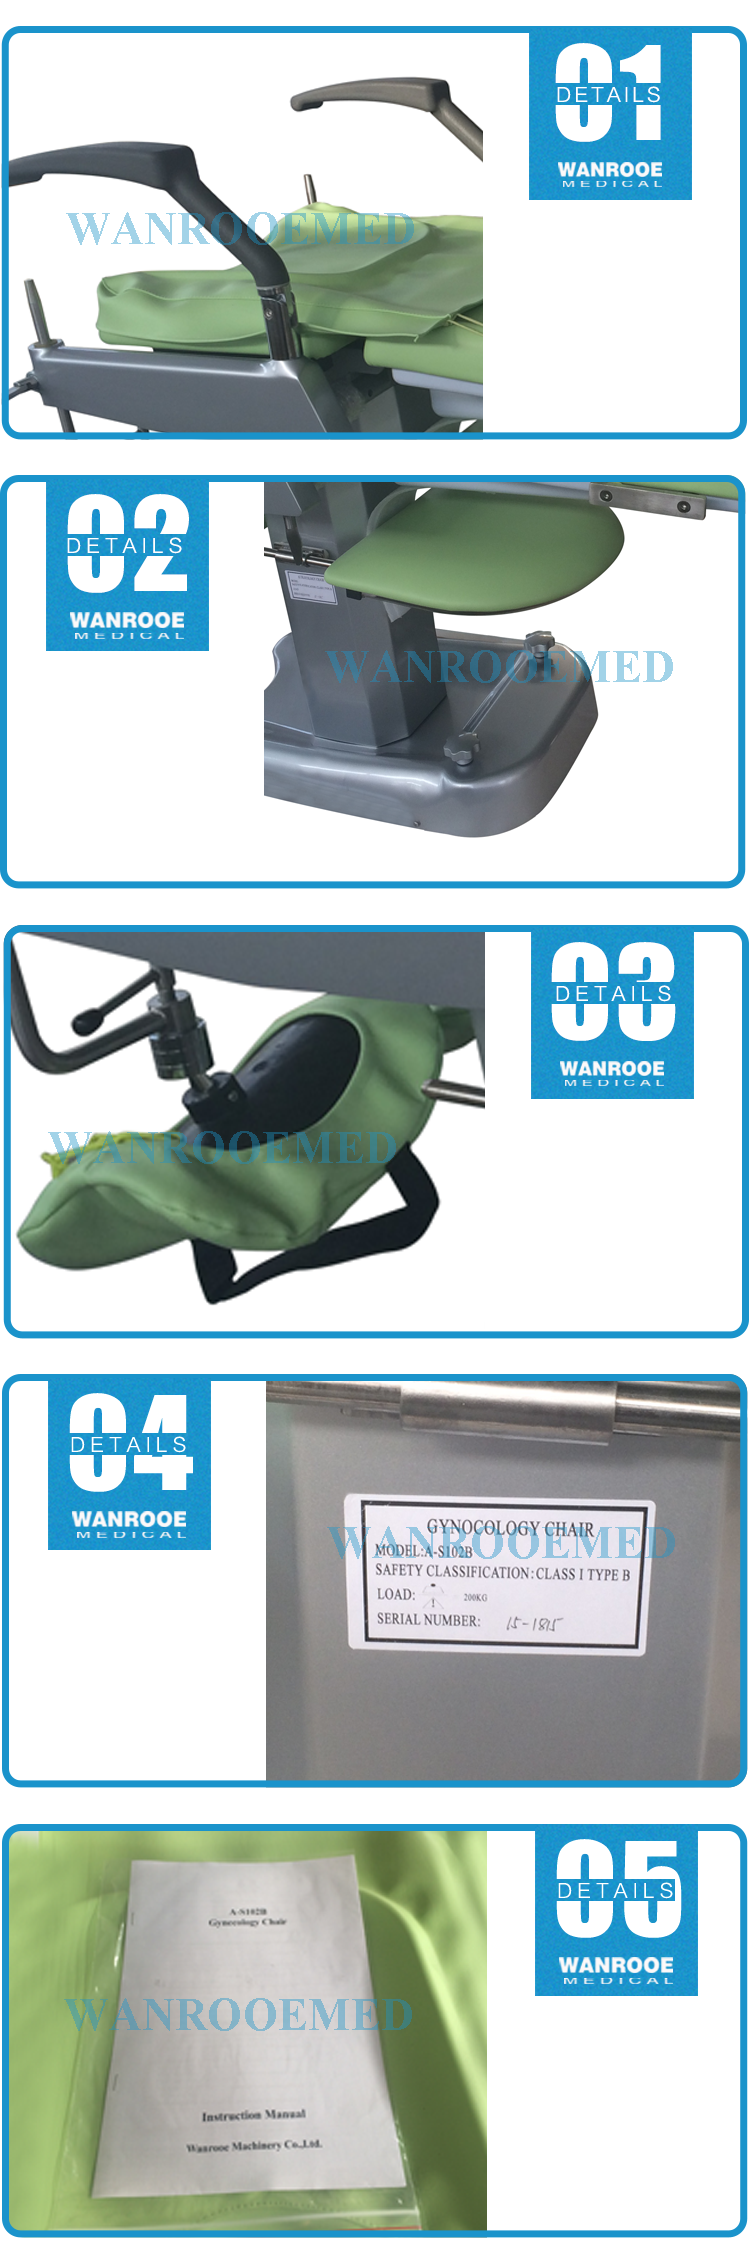 Stainless Steel Gynecology Chair, Gynecology Chair, Examination Chair, Portable Gynecology Chair